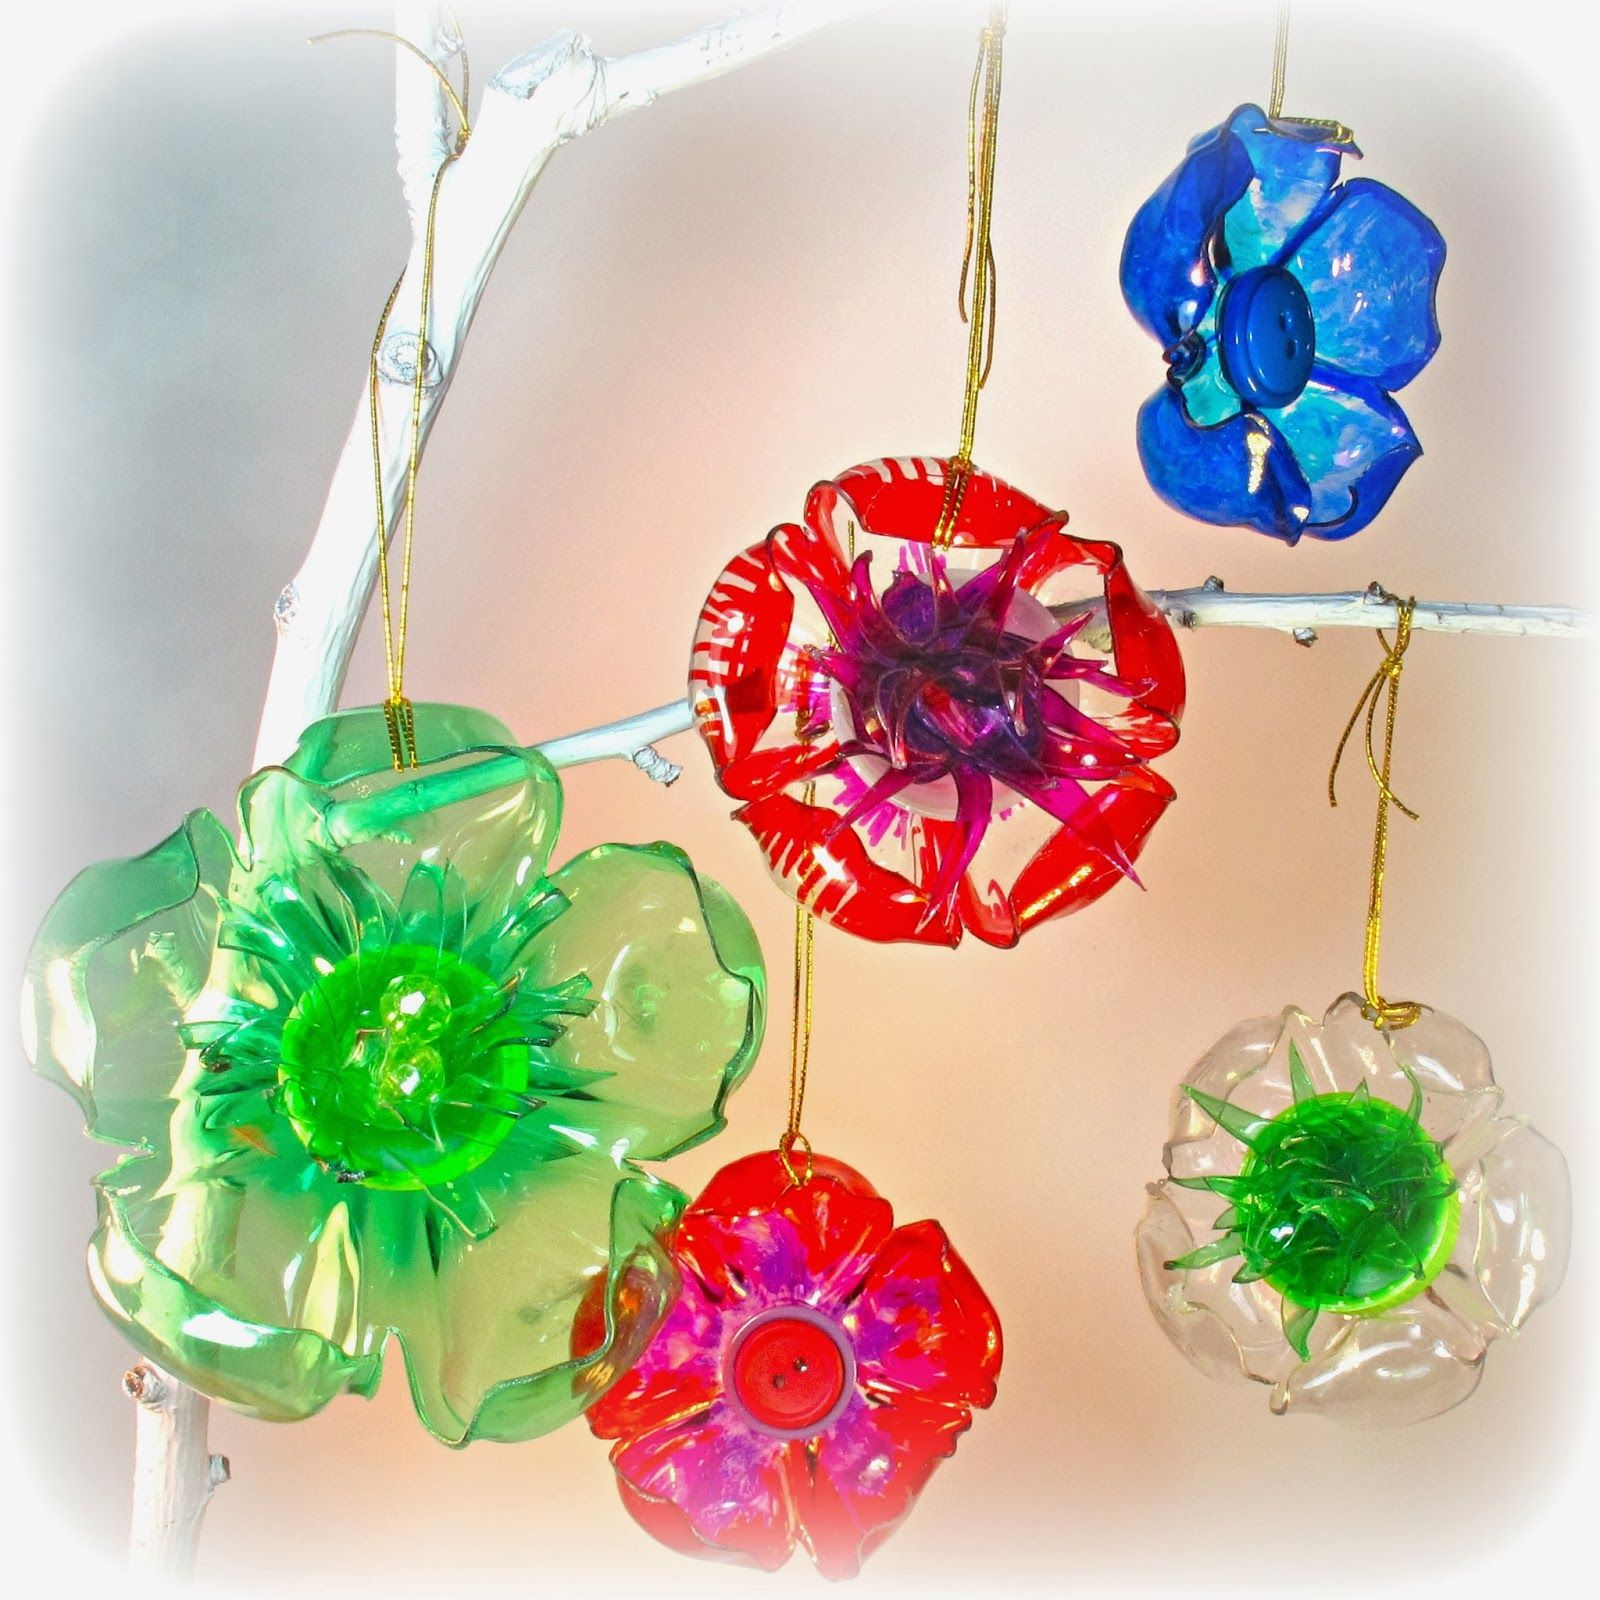 Plastic bottles recycling ideas recycled things - Blukatkraft Diy Recycled Plastic Bottle Crafts Kid S Crafts Great Idea Instead Of Bows